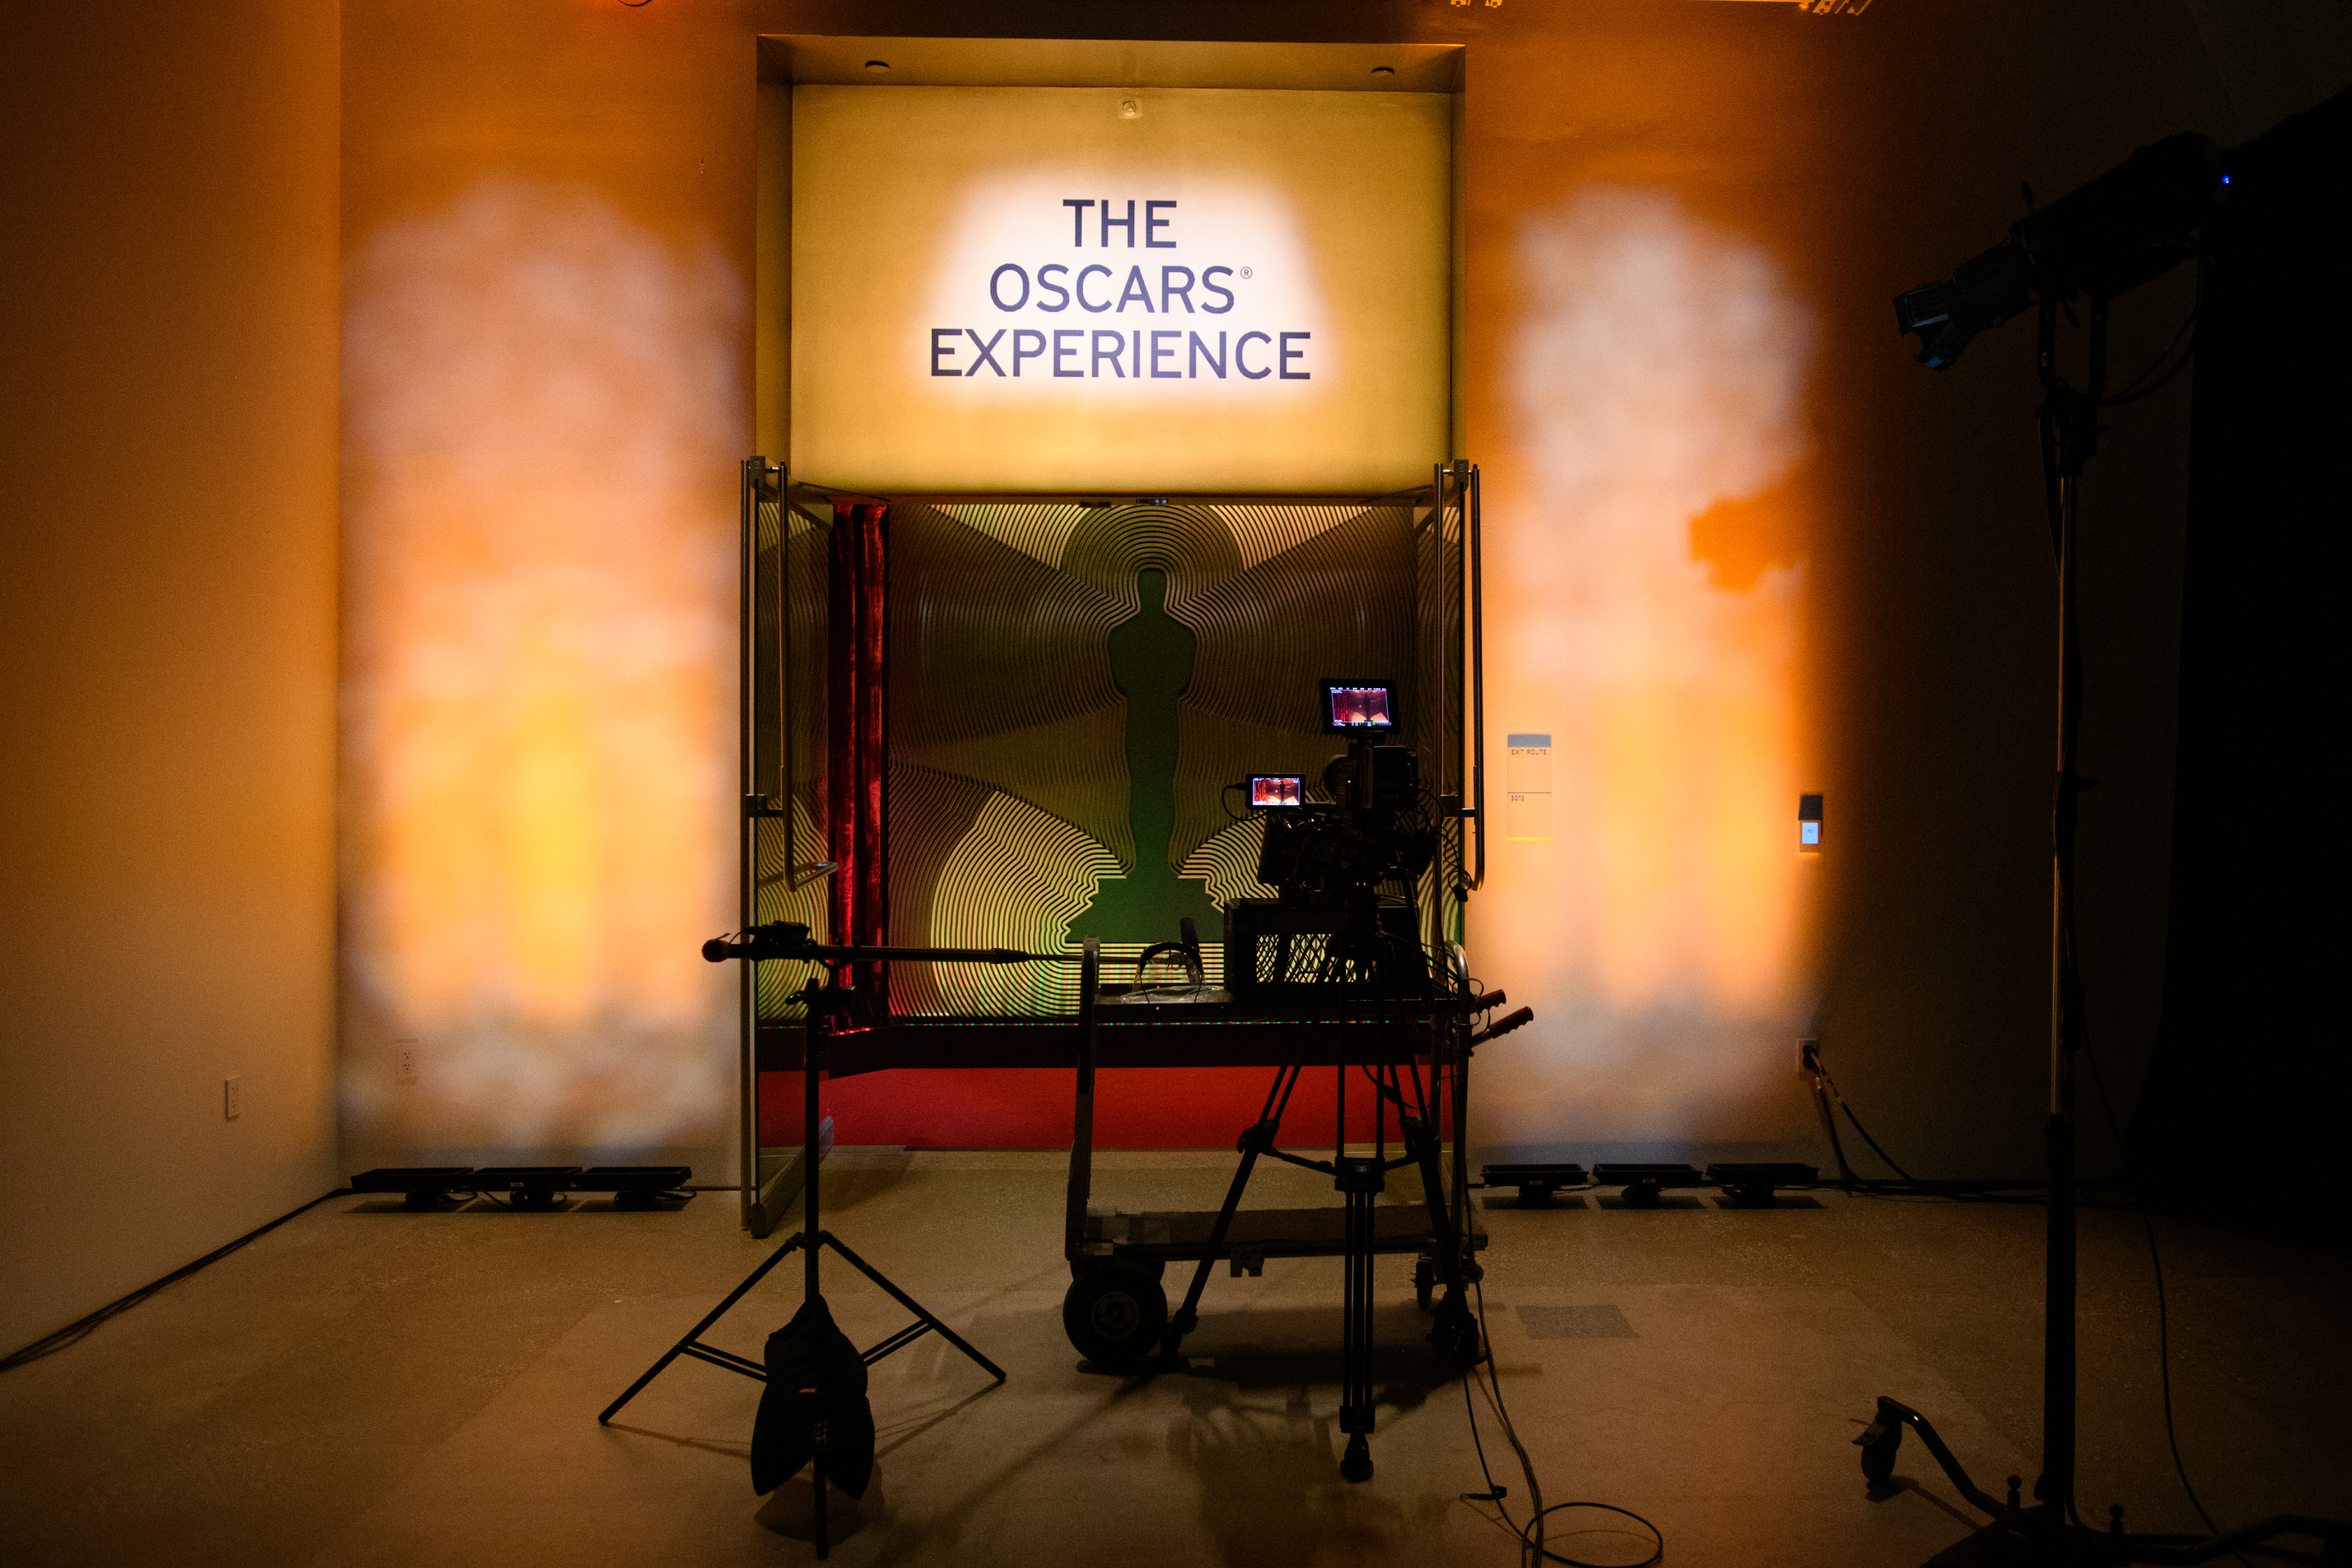 this handout image provided by A.M.P.A.S. the stage is set for the 93rd Academy Awards Nominations Announcement on March 15, 2021.